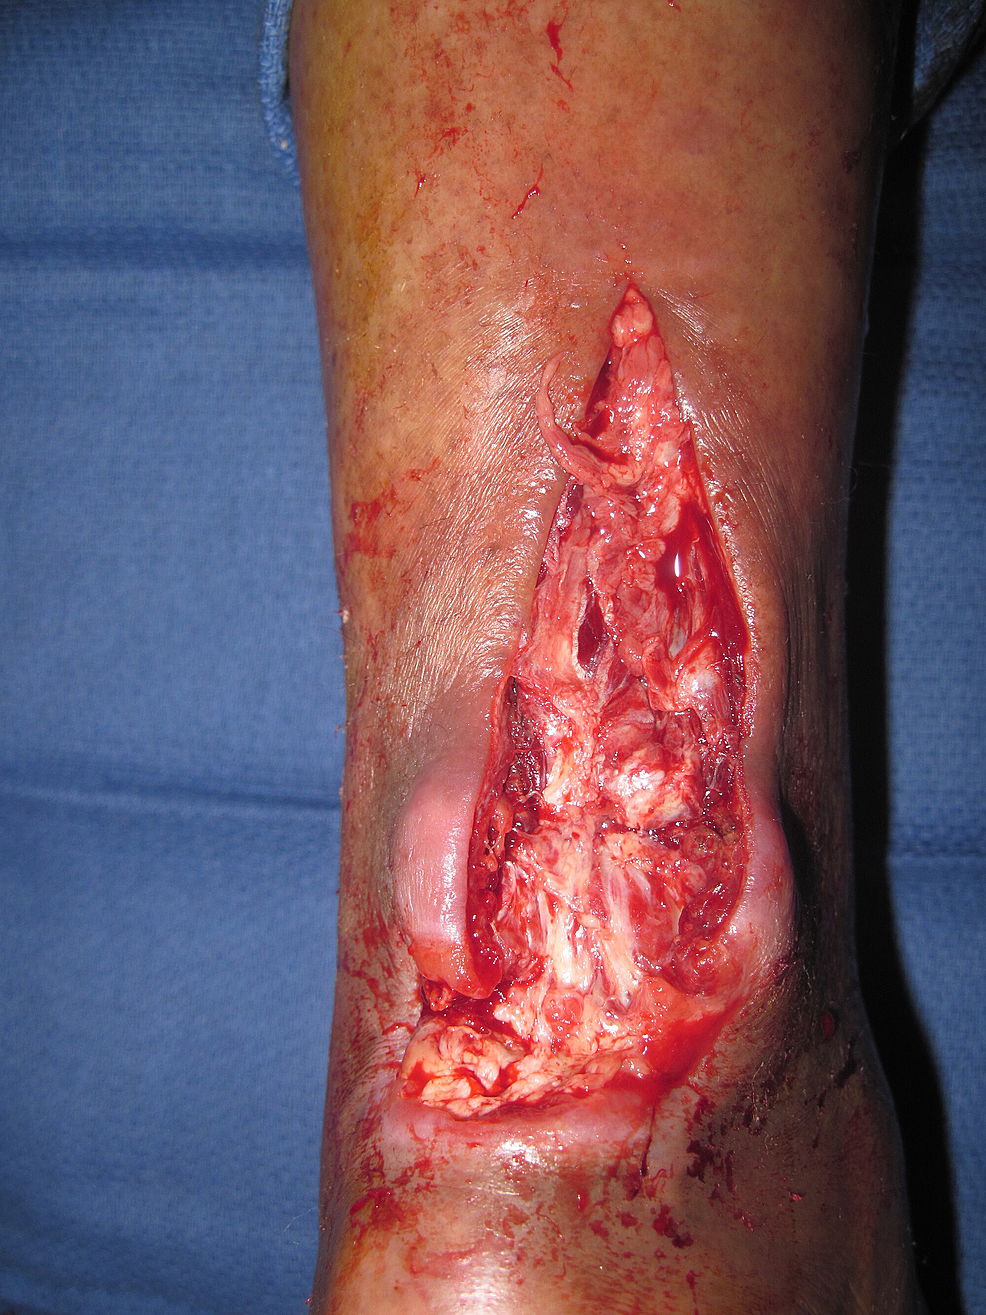 Following-incision-and-drainage.-Note-the-large-area-of-destruction-of-portions-of-the-Achilles-tendon.